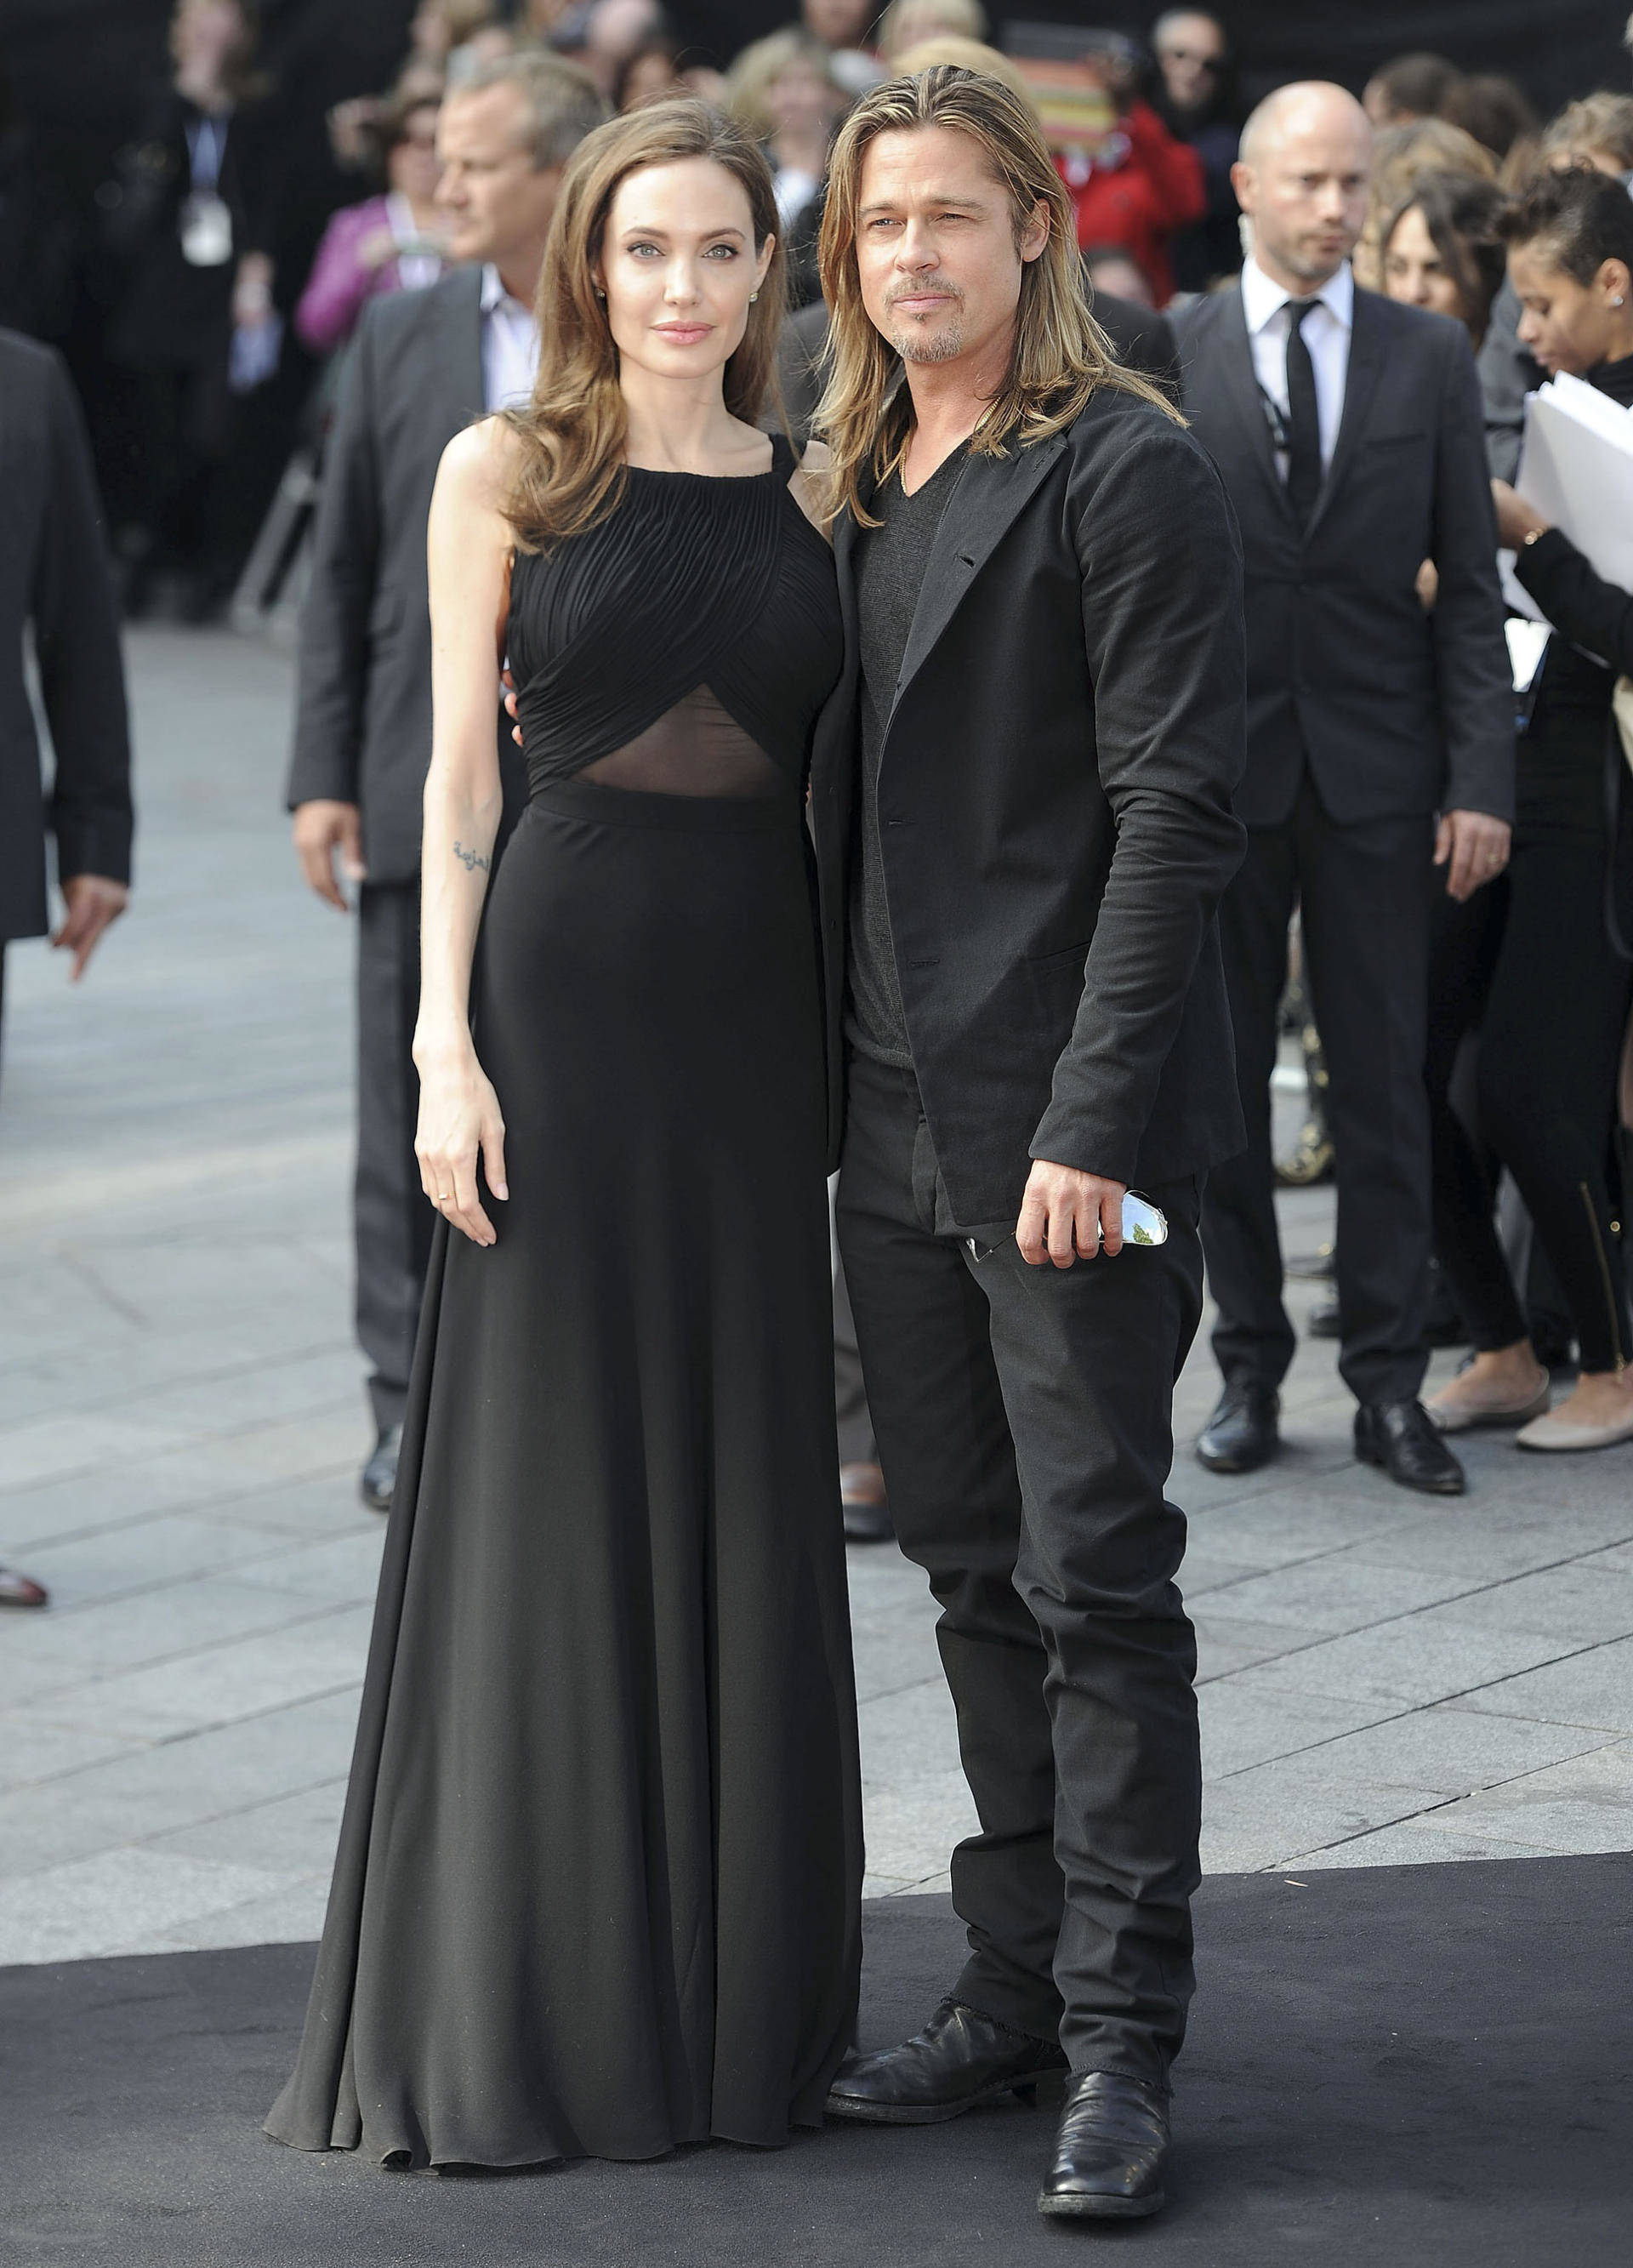 brad pitt and angelina jolie at the world premiere of